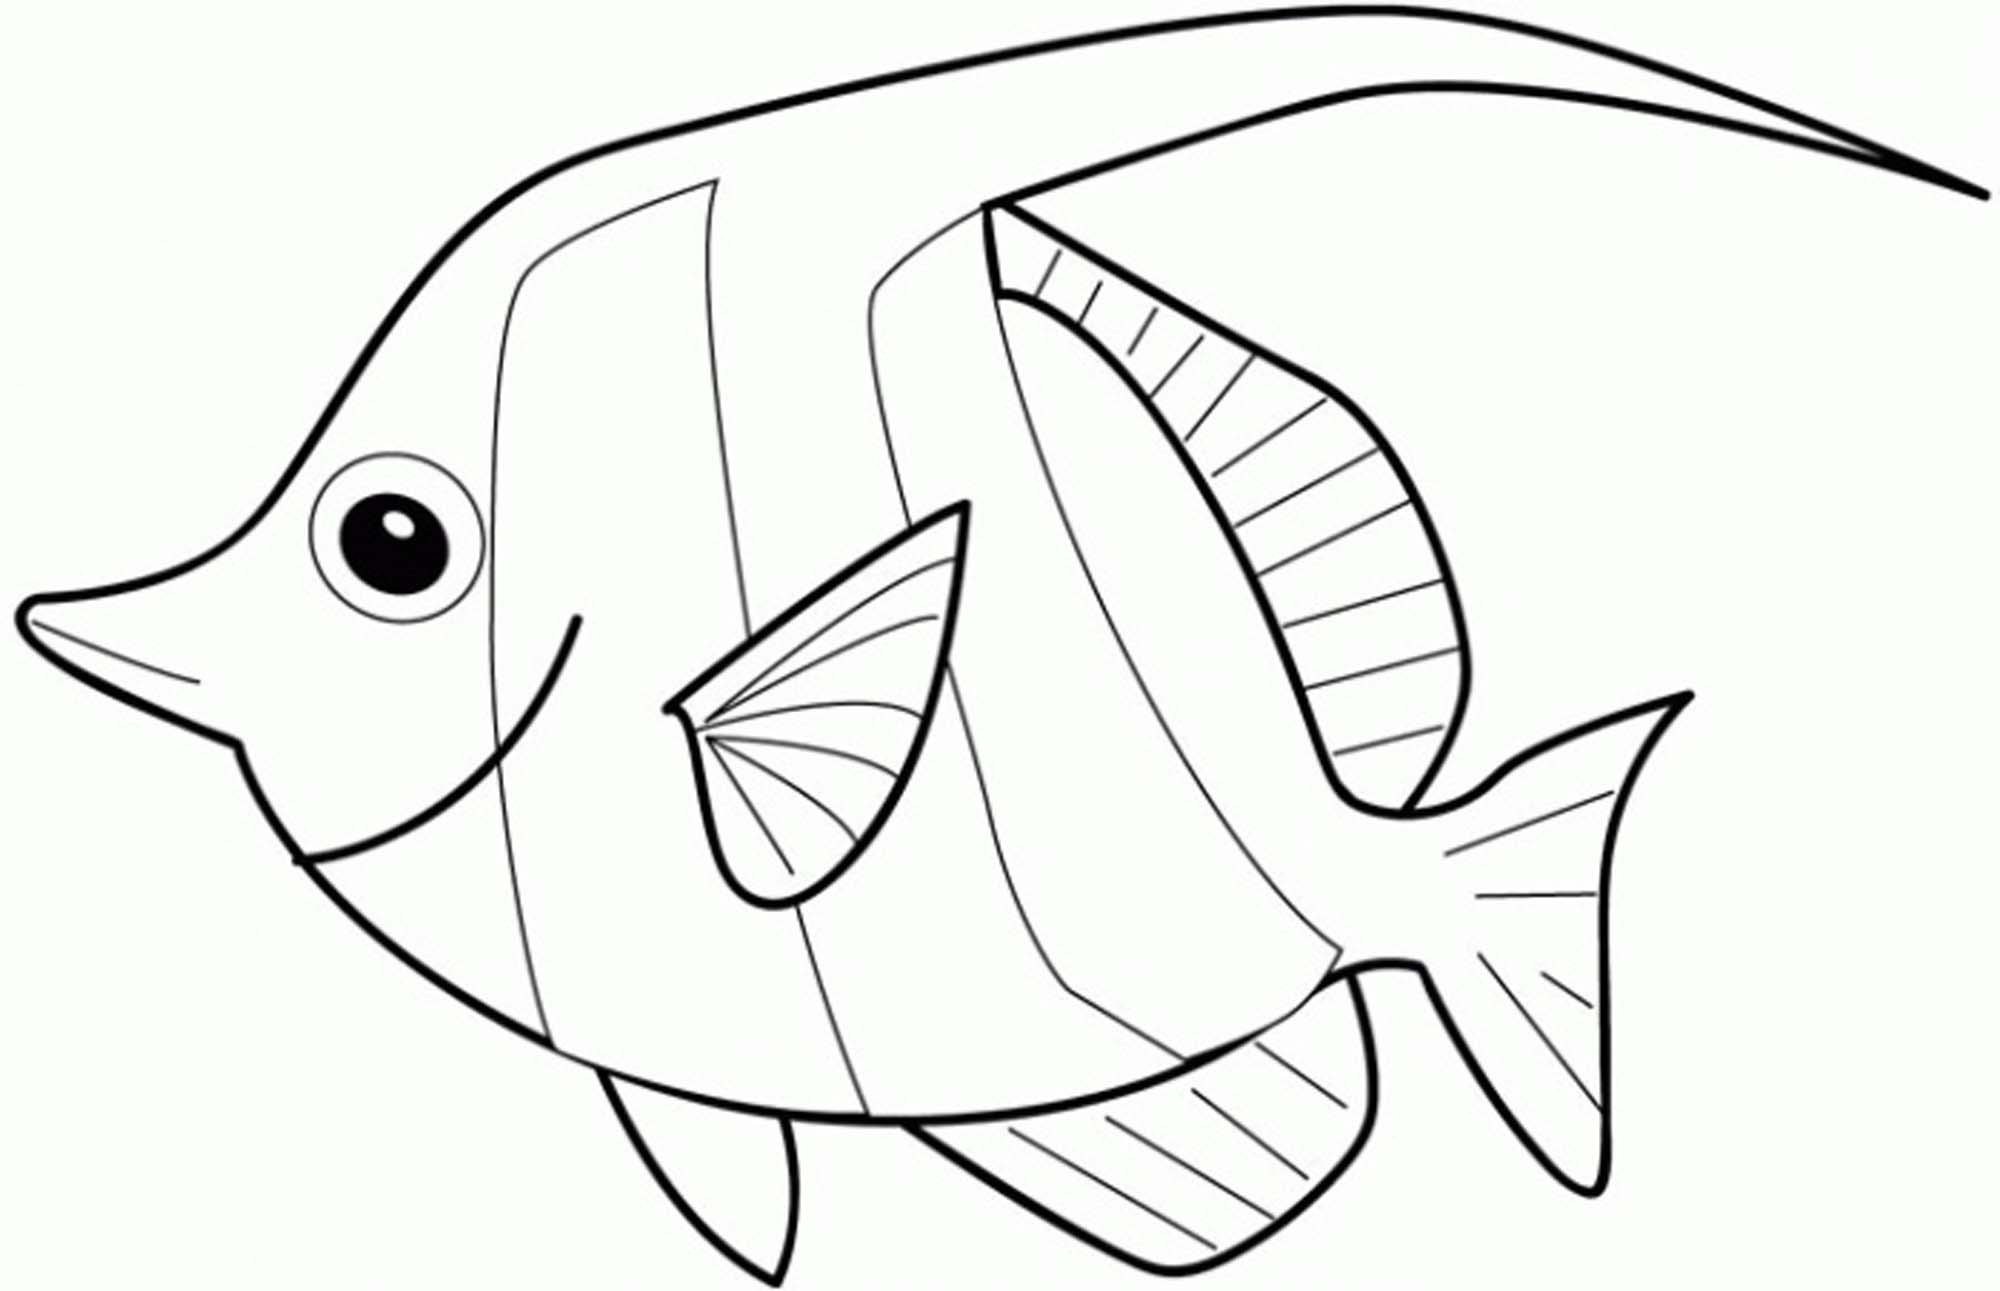 2000x1291 New Angelfish Coloring Page Design Printable Coloring Sheet